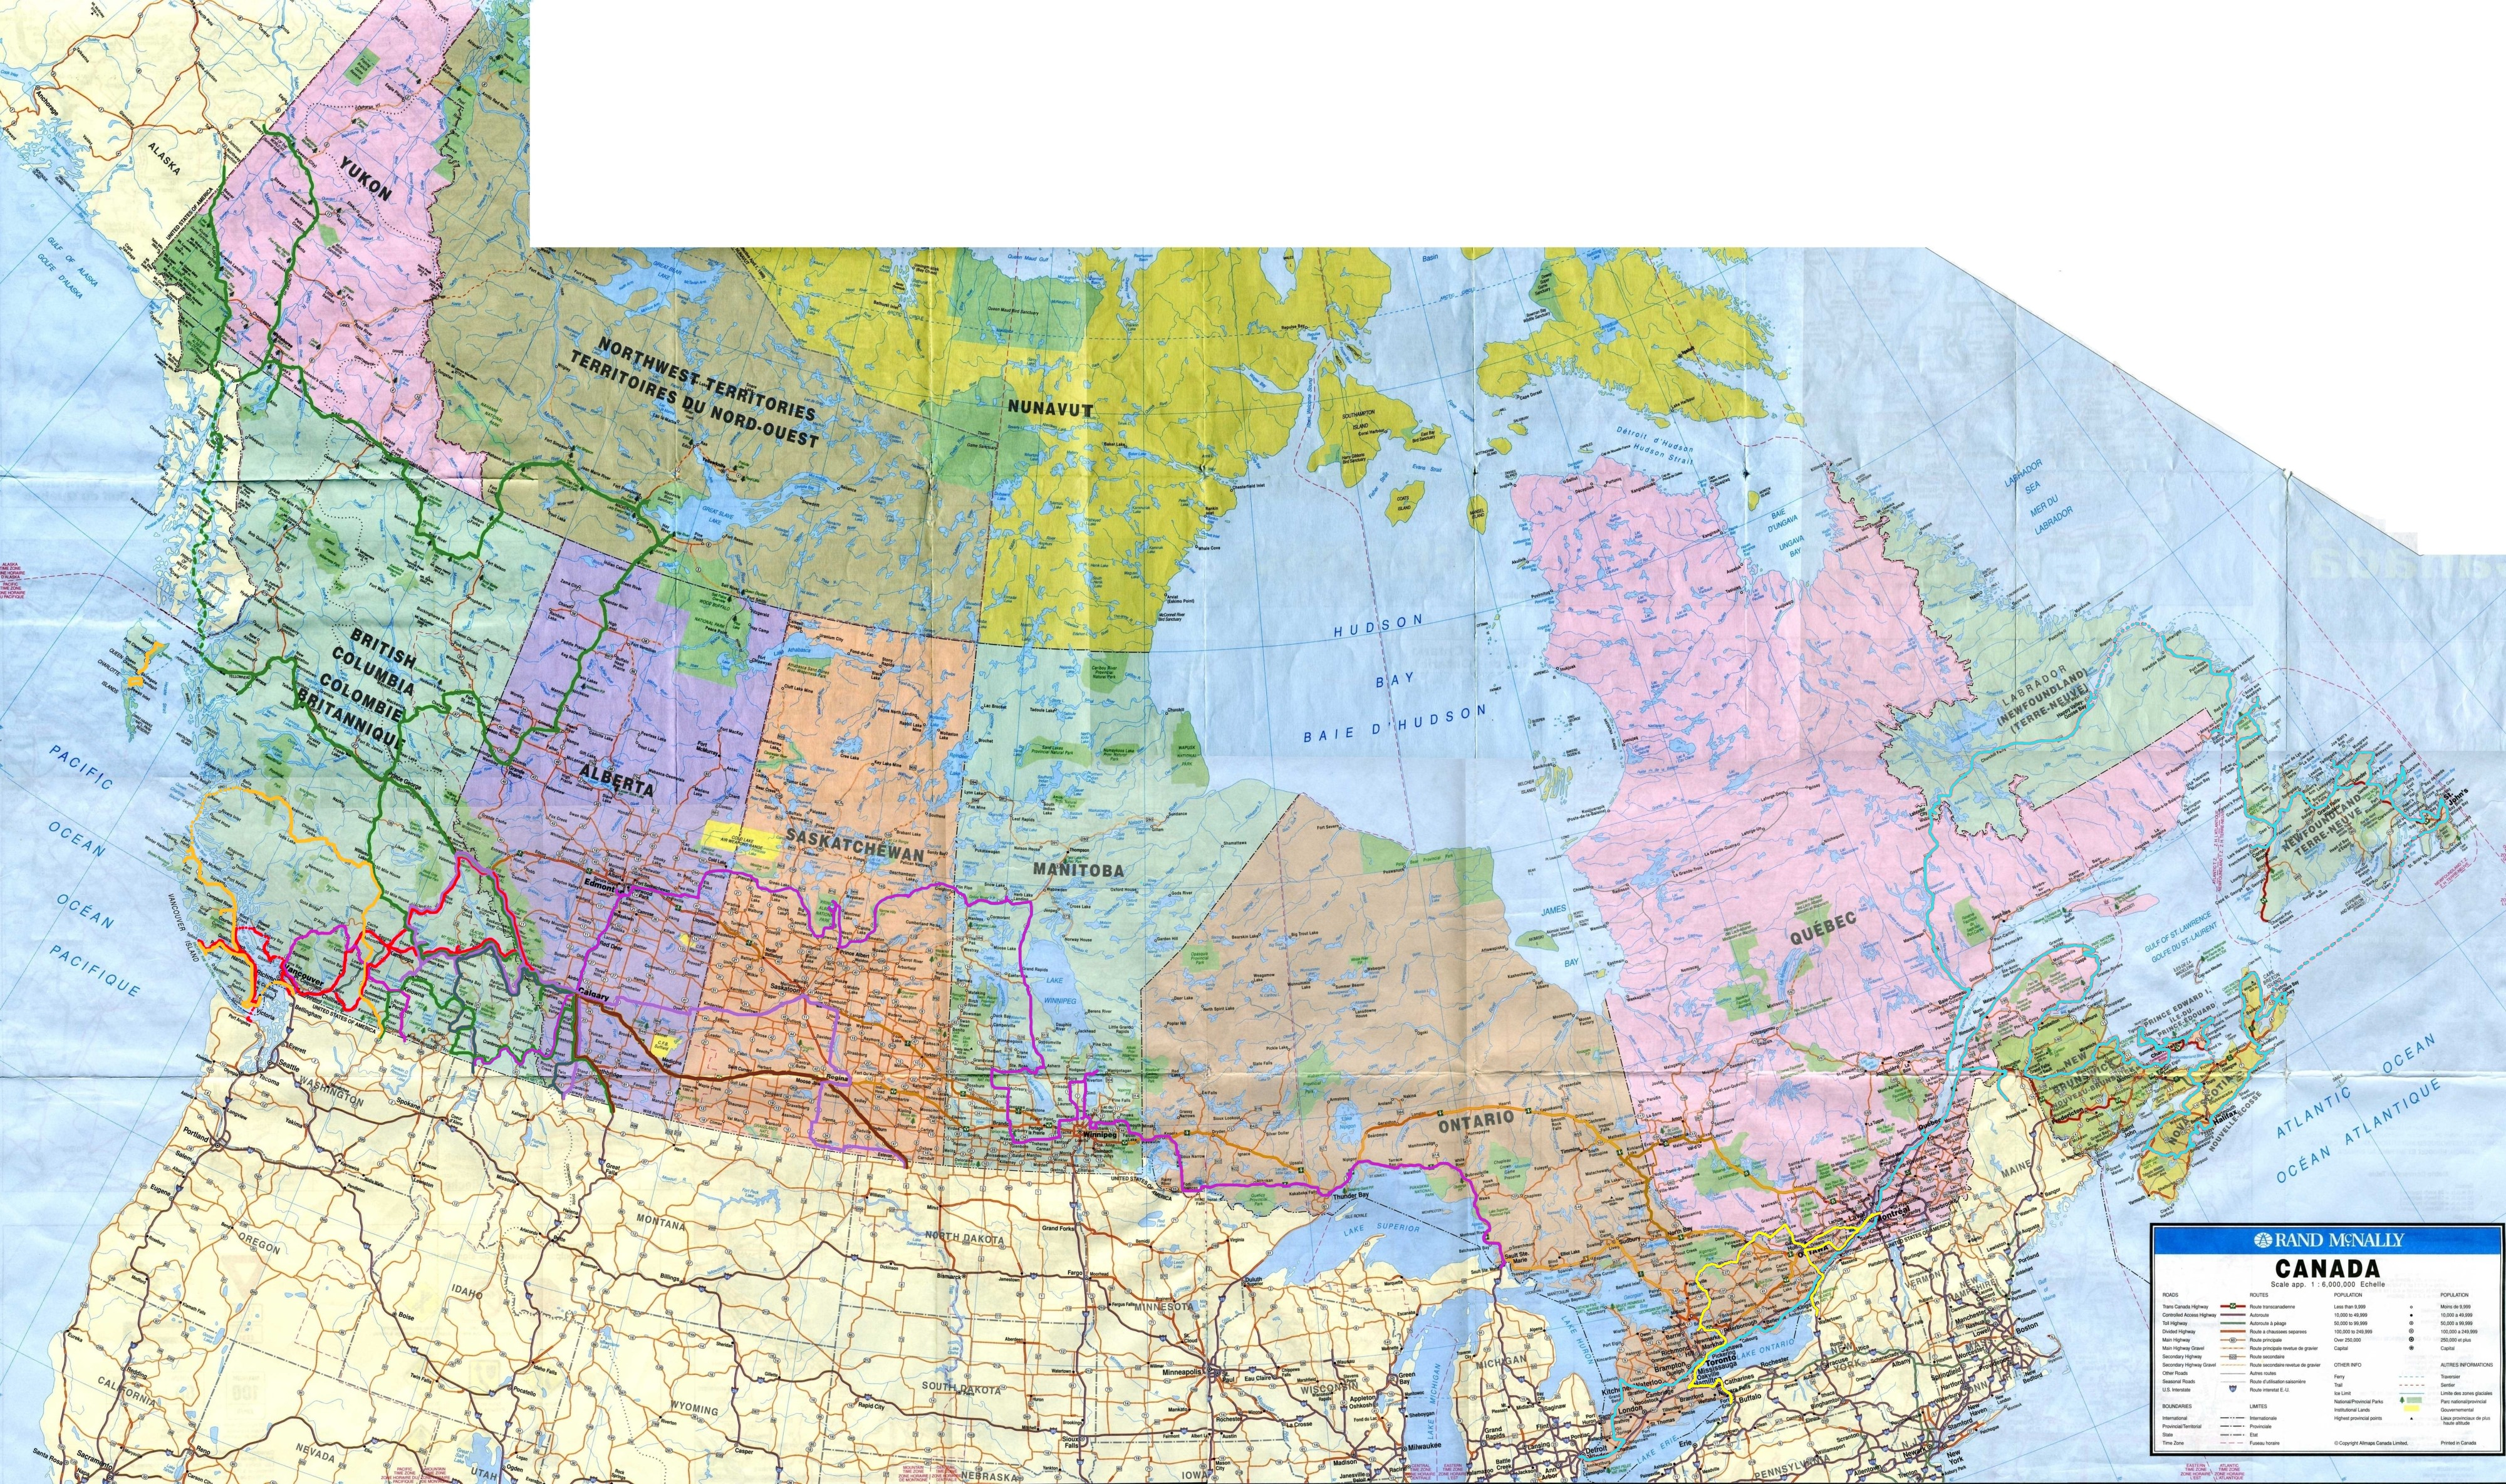 route map of our travels in canada